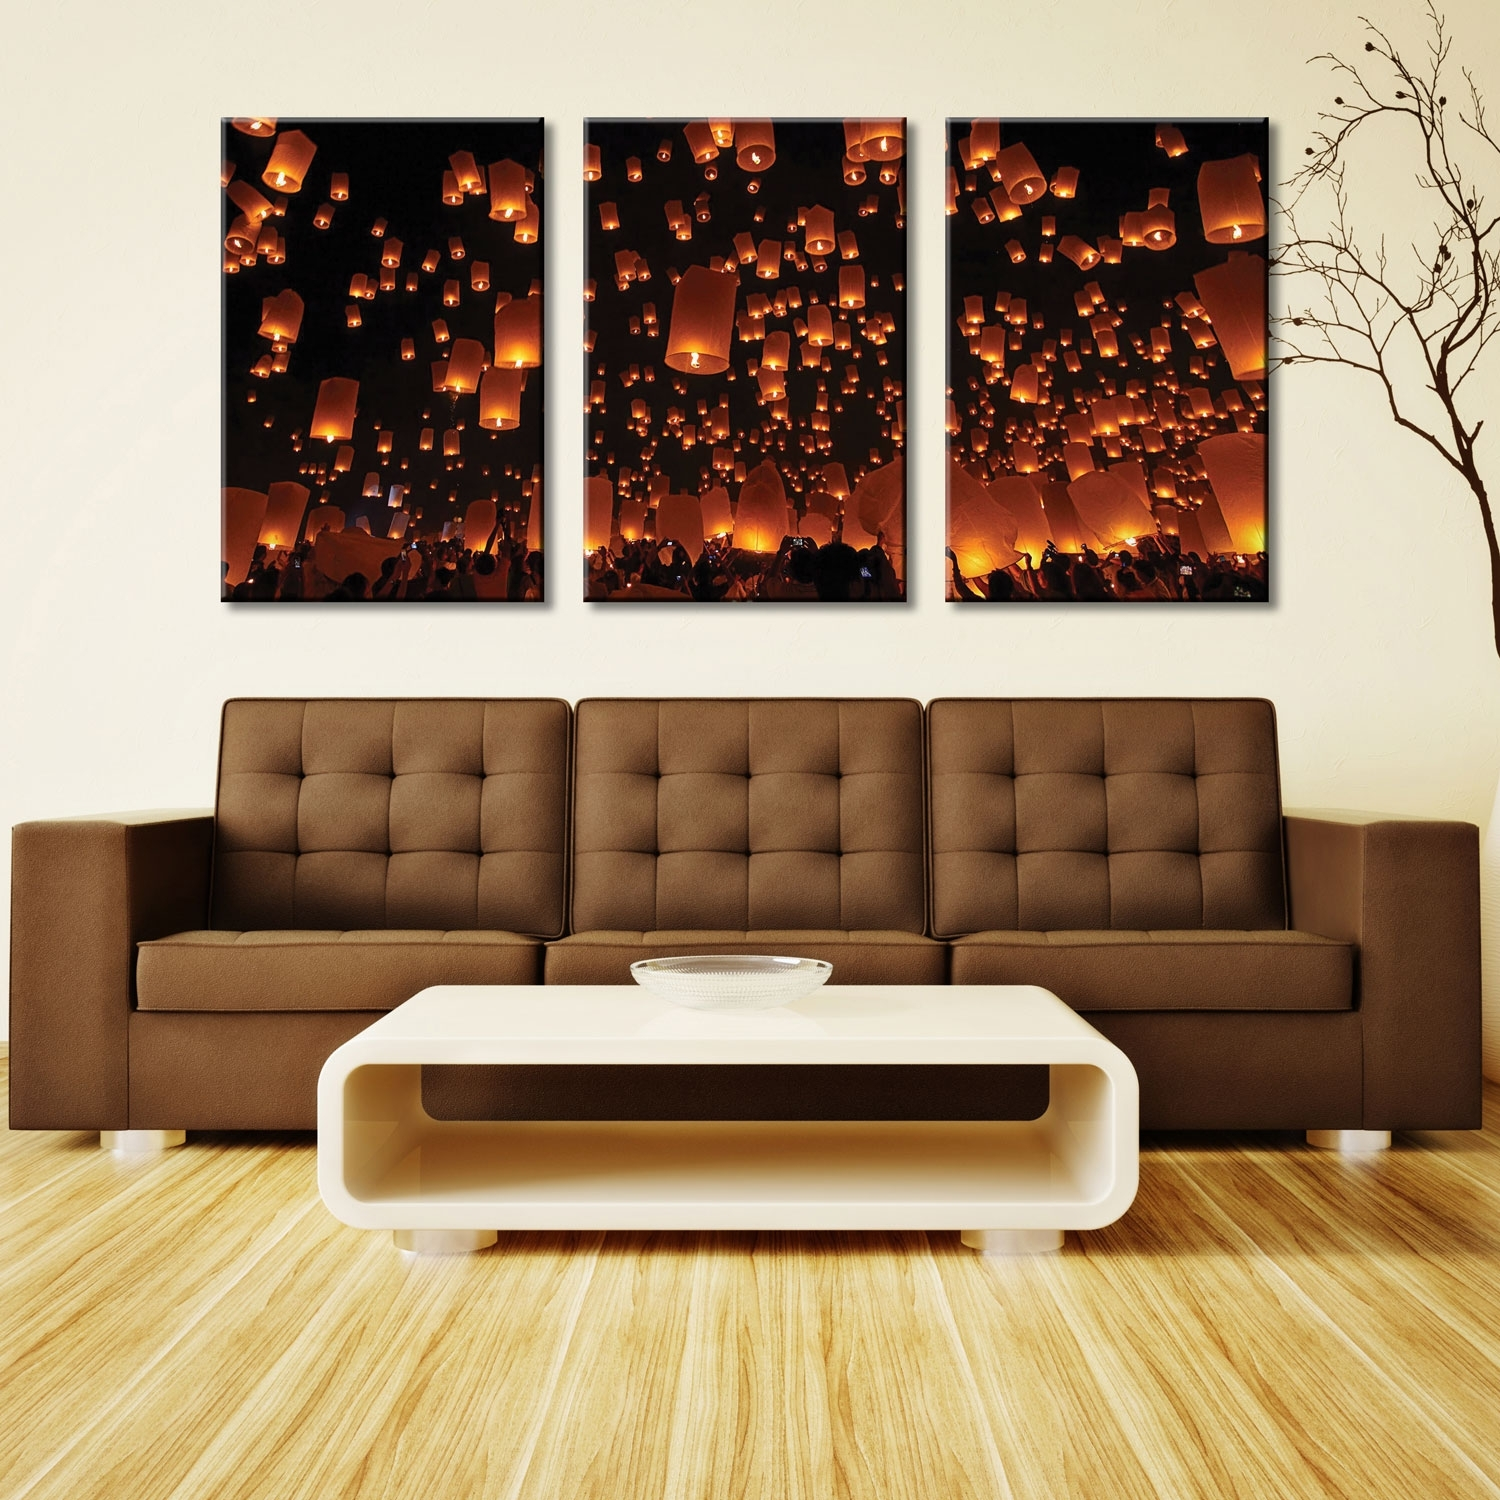 Chinese Lanterns Triptych 3 Panel Split Canvas Wall Art Picture Intended For Triptych Wall Art (View 17 of 20)